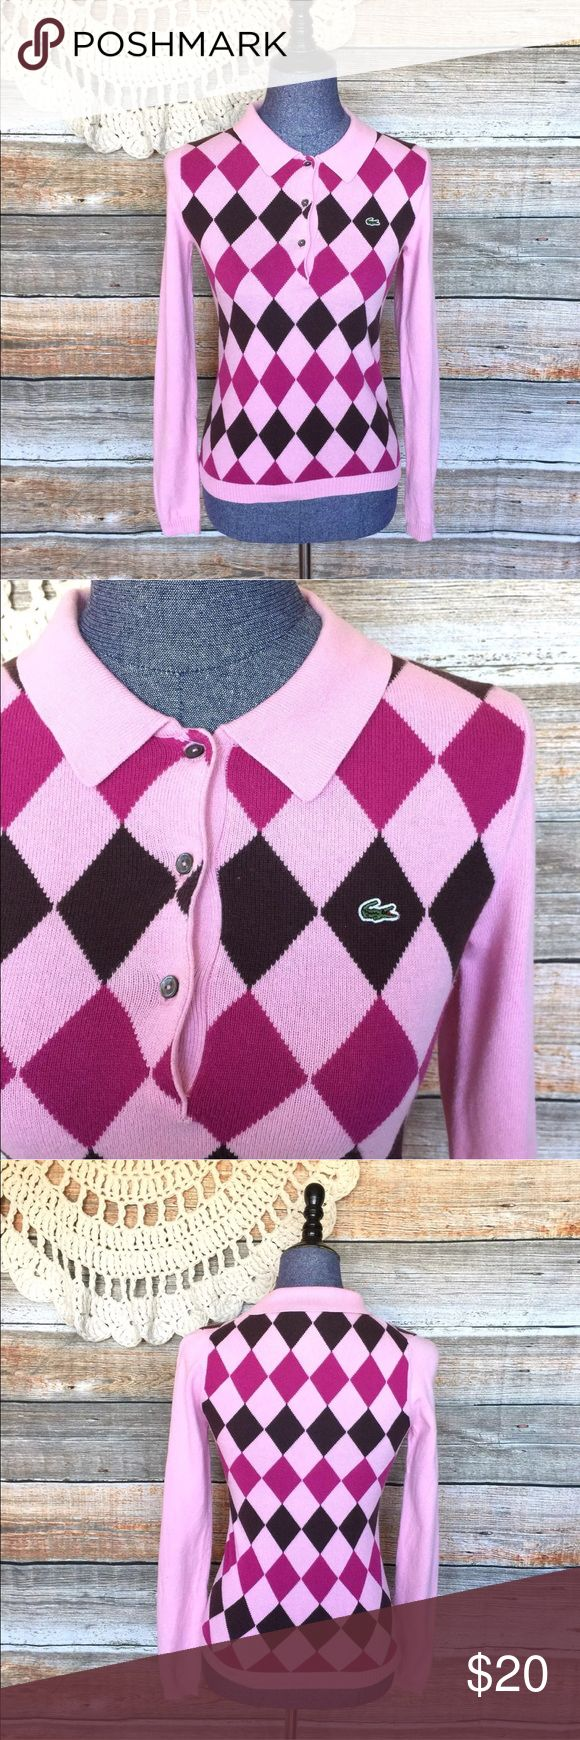 """Lacoste Pink Argyle Cashmere Blend Sweater Bust: 28"""" Length: 22"""" Small spot on sleeve as seen above. All my items have been freshly washed and steamed. If you have any questions, feel free to message me. Thanks for stopping by and have a lovely day! Lacoste Sweaters"""